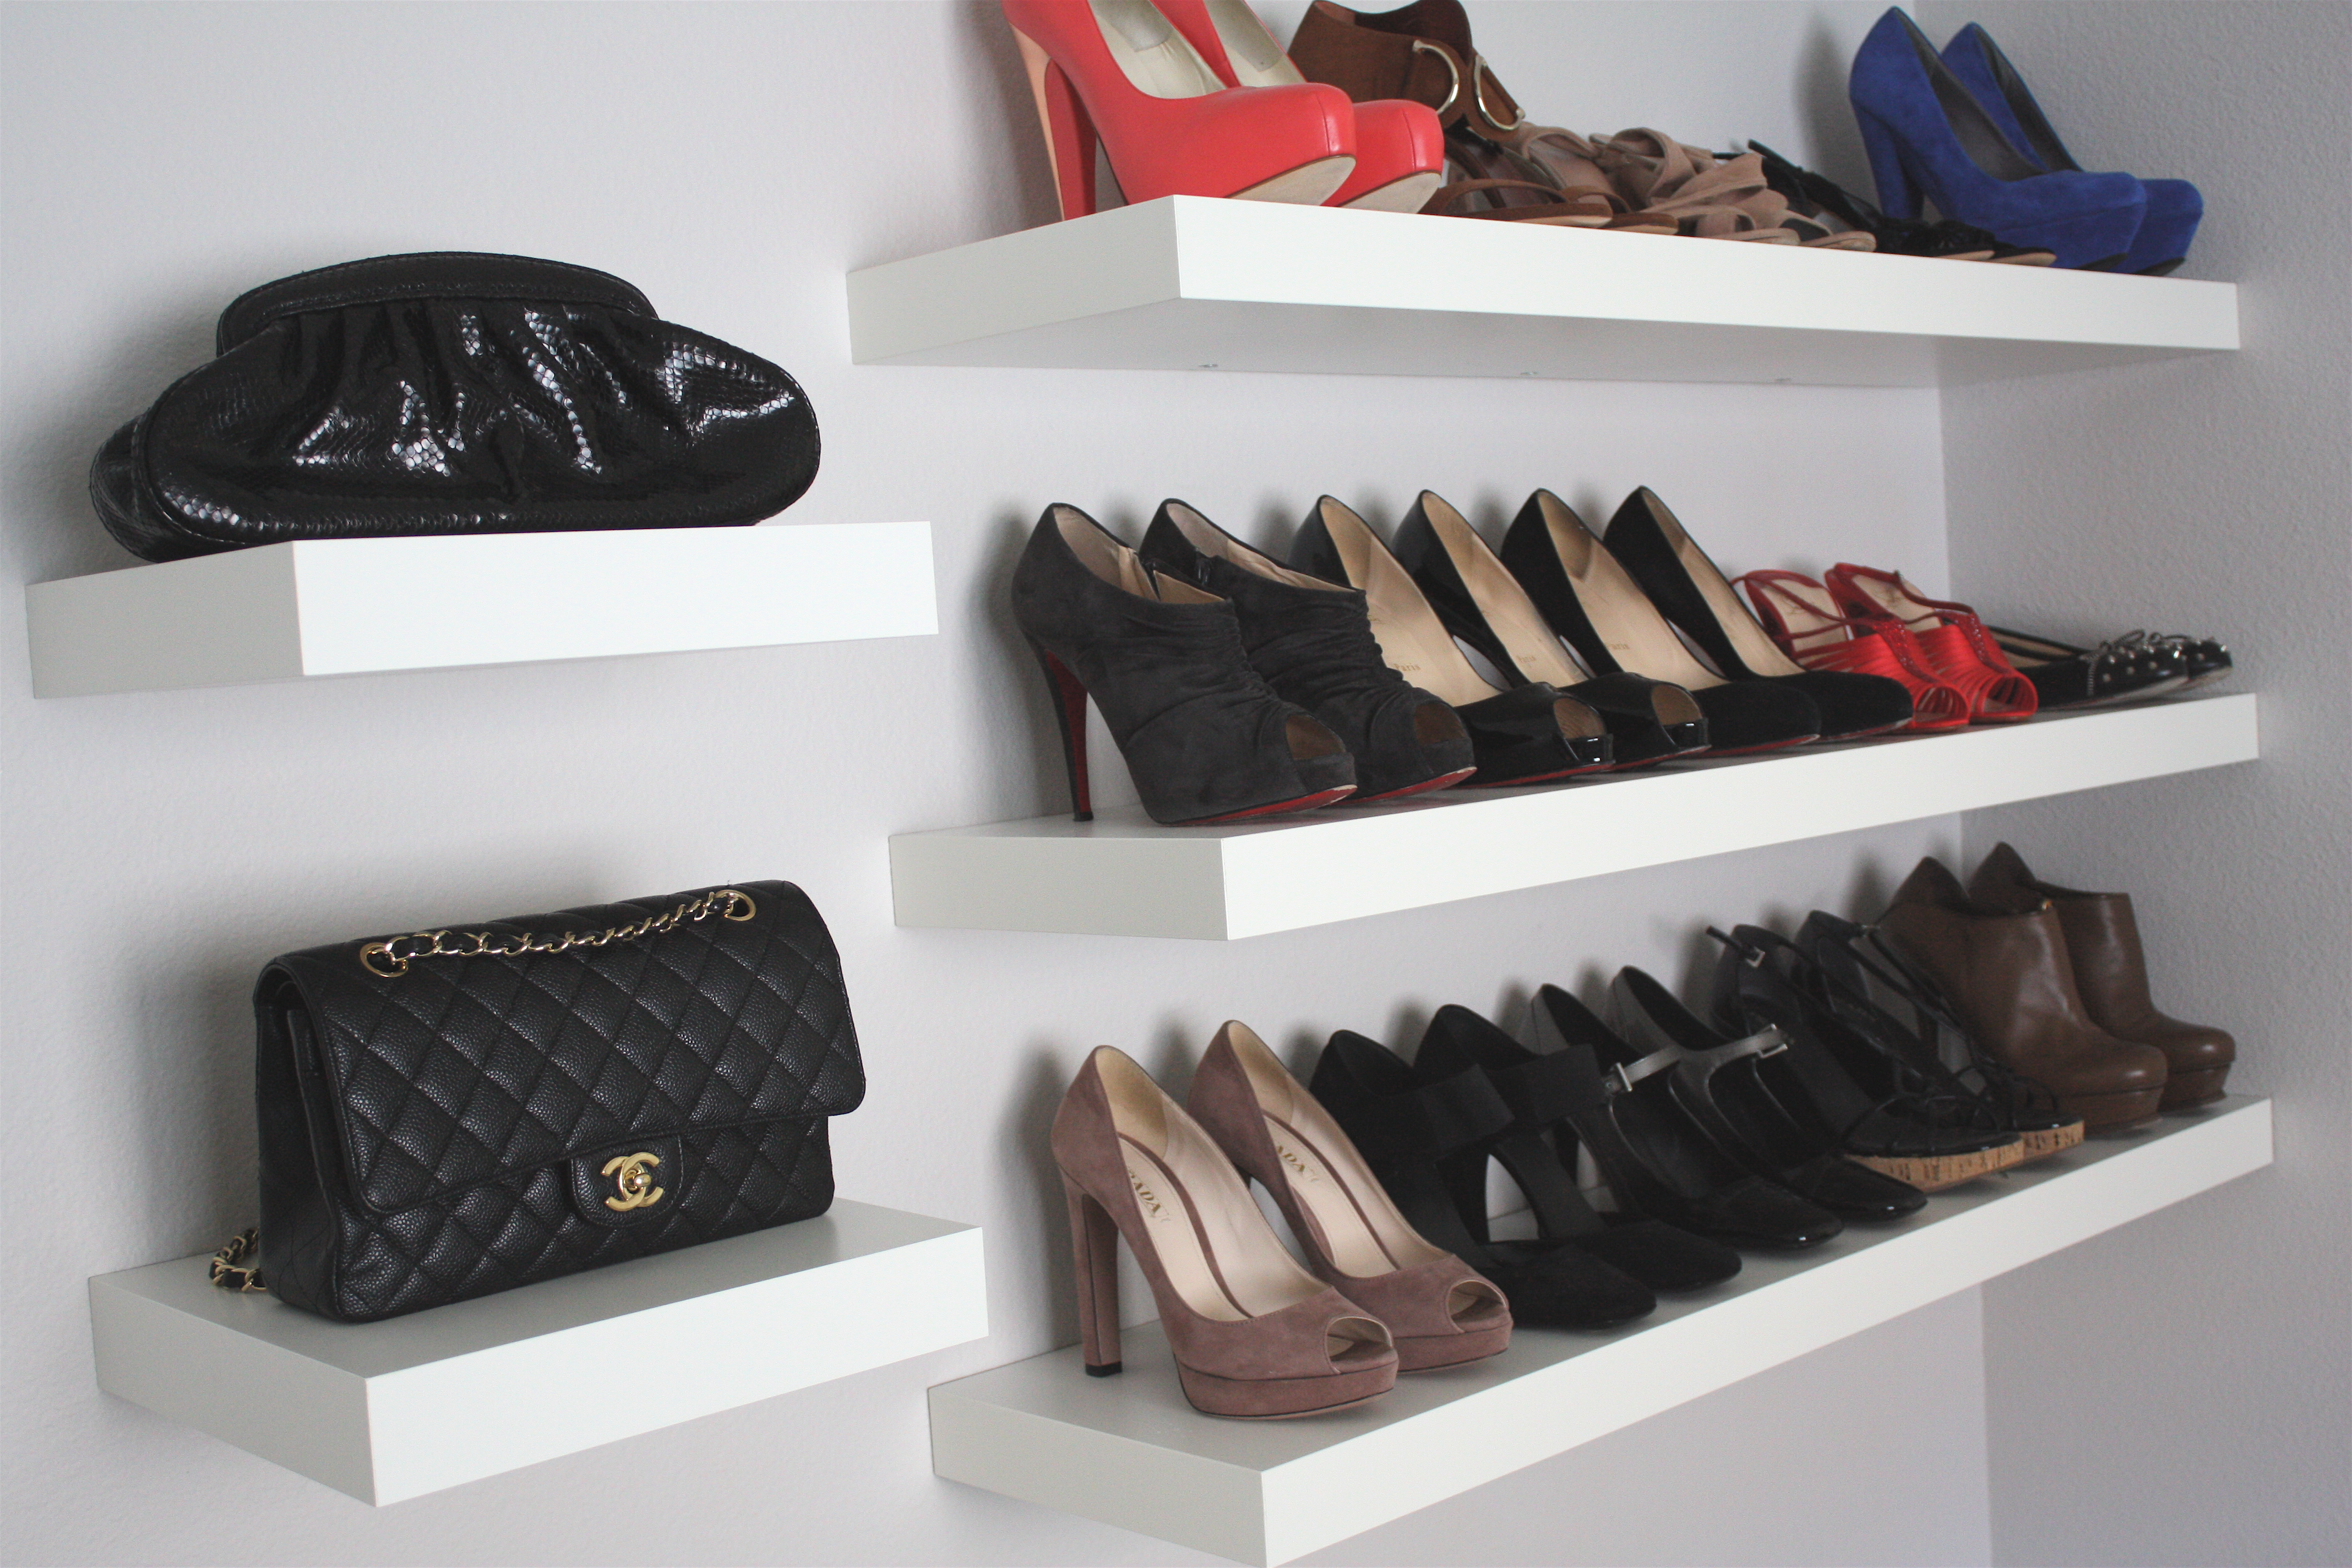 shoe wall shelves pmpresssecretariat floating shelf rack ysl page saveenlarge for shoes jessannkirbycom white kitchen without upper cabinets ikea mini adjustable closet storage